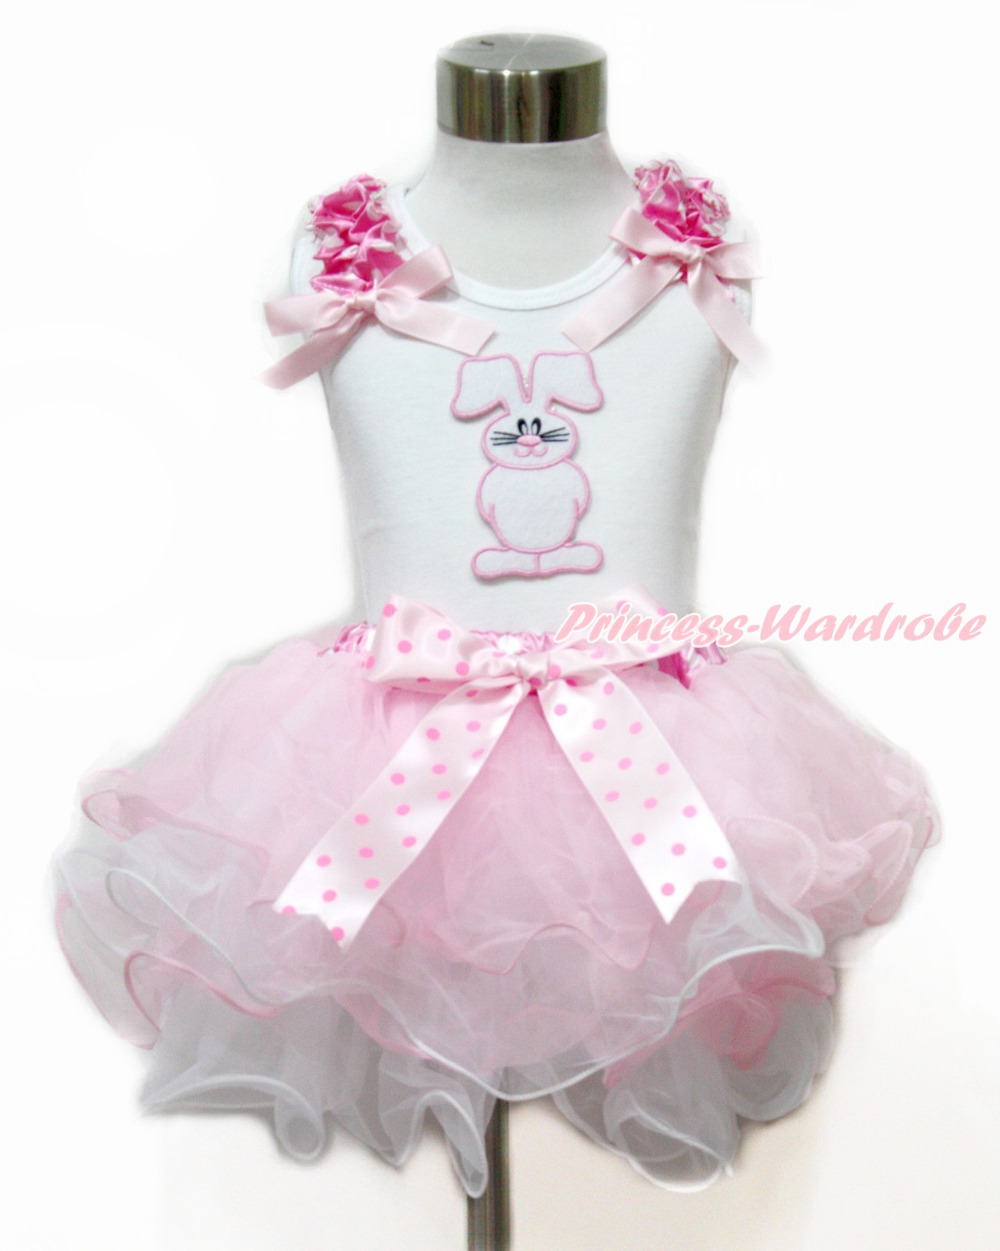 ФОТО Easter White Tank Top With Hot Pink &Light Pink Bow& Bunny Rabbit & Light Hot Pink Dots Bow Pink White Petal Pettiskirt MAMG1109